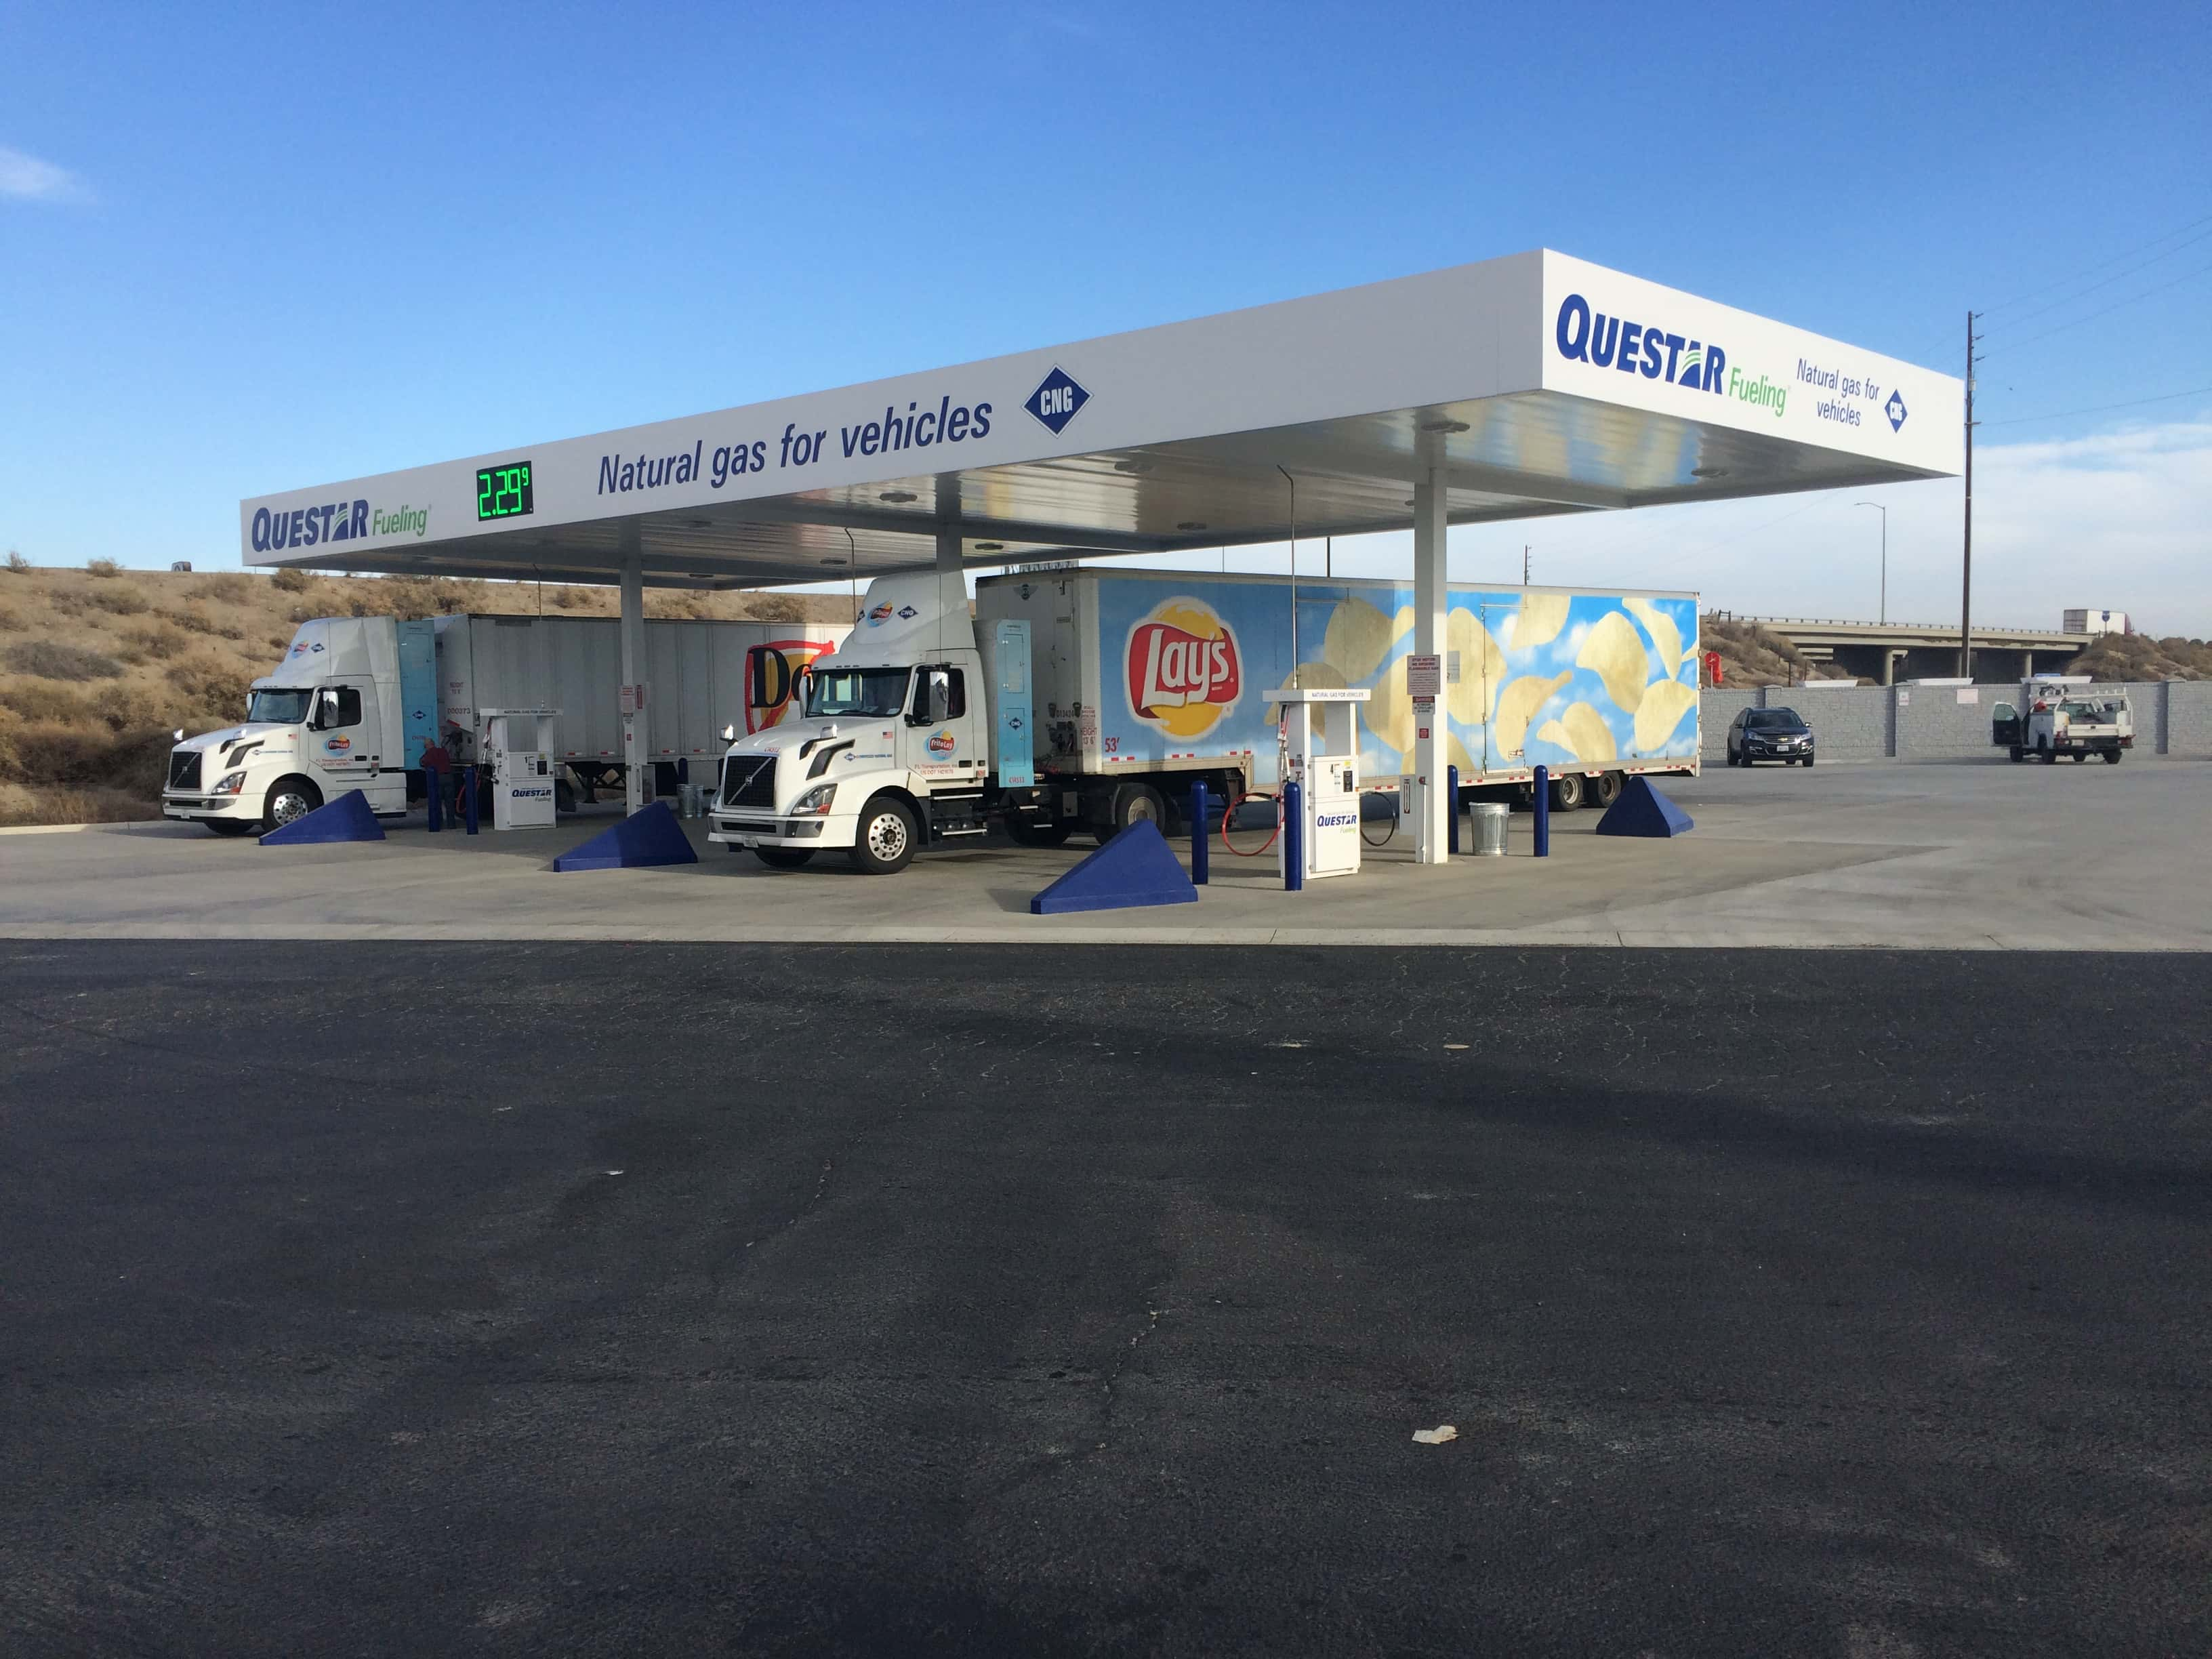 Cng Stations Utah Map.Questar Fueling Opens Cng Stations In California And Colorado Ngt News